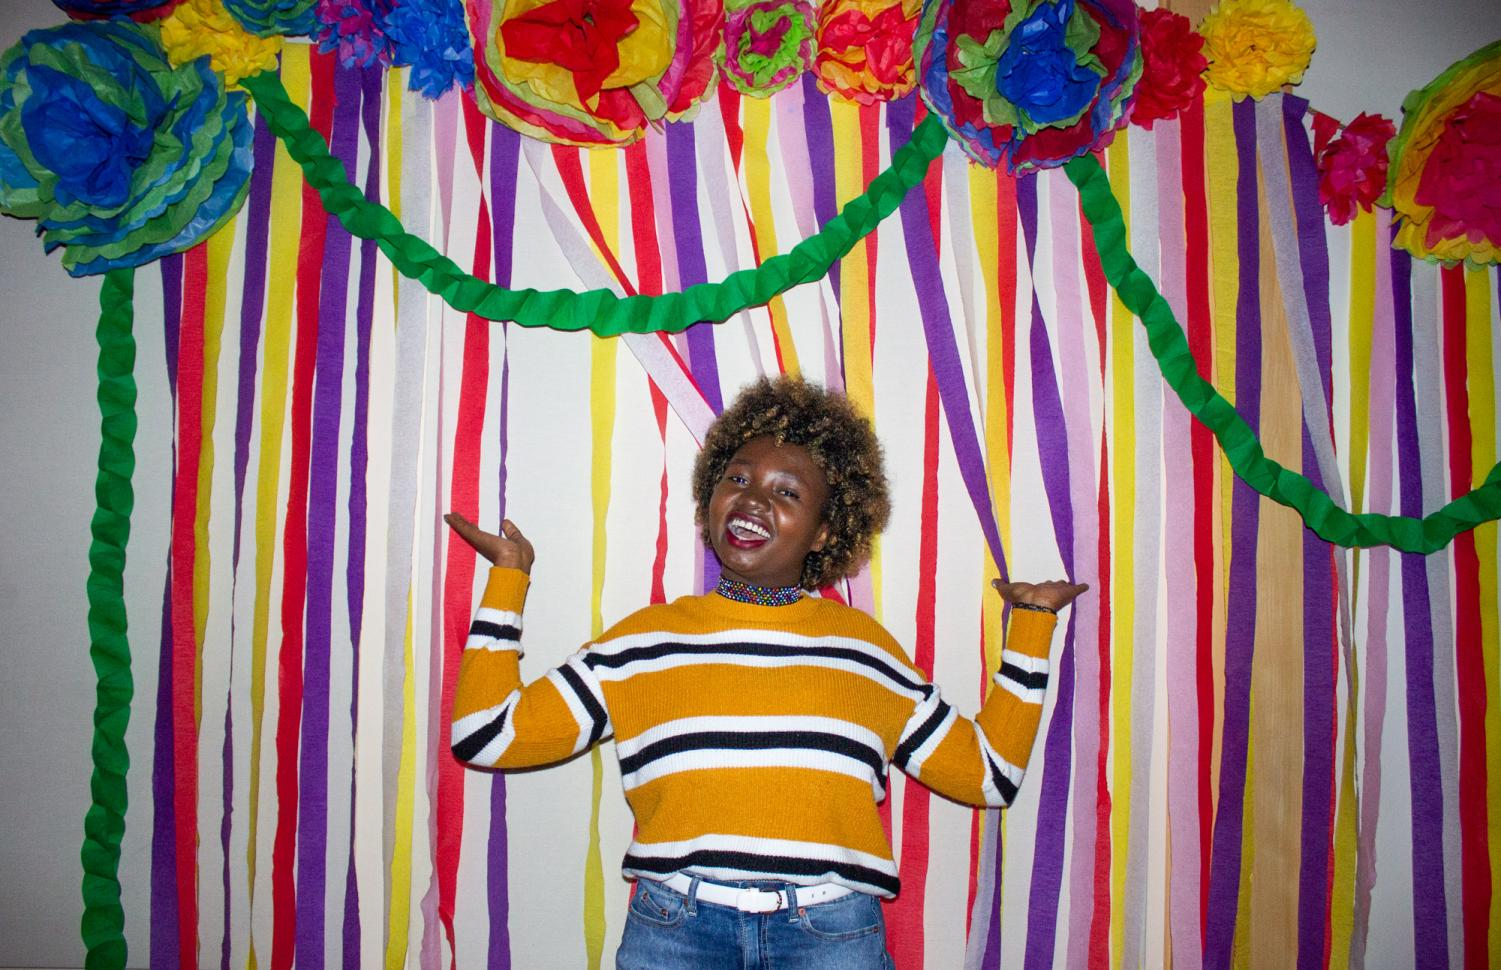 Sophomore Sylvia Adome poses at the event's photo booth